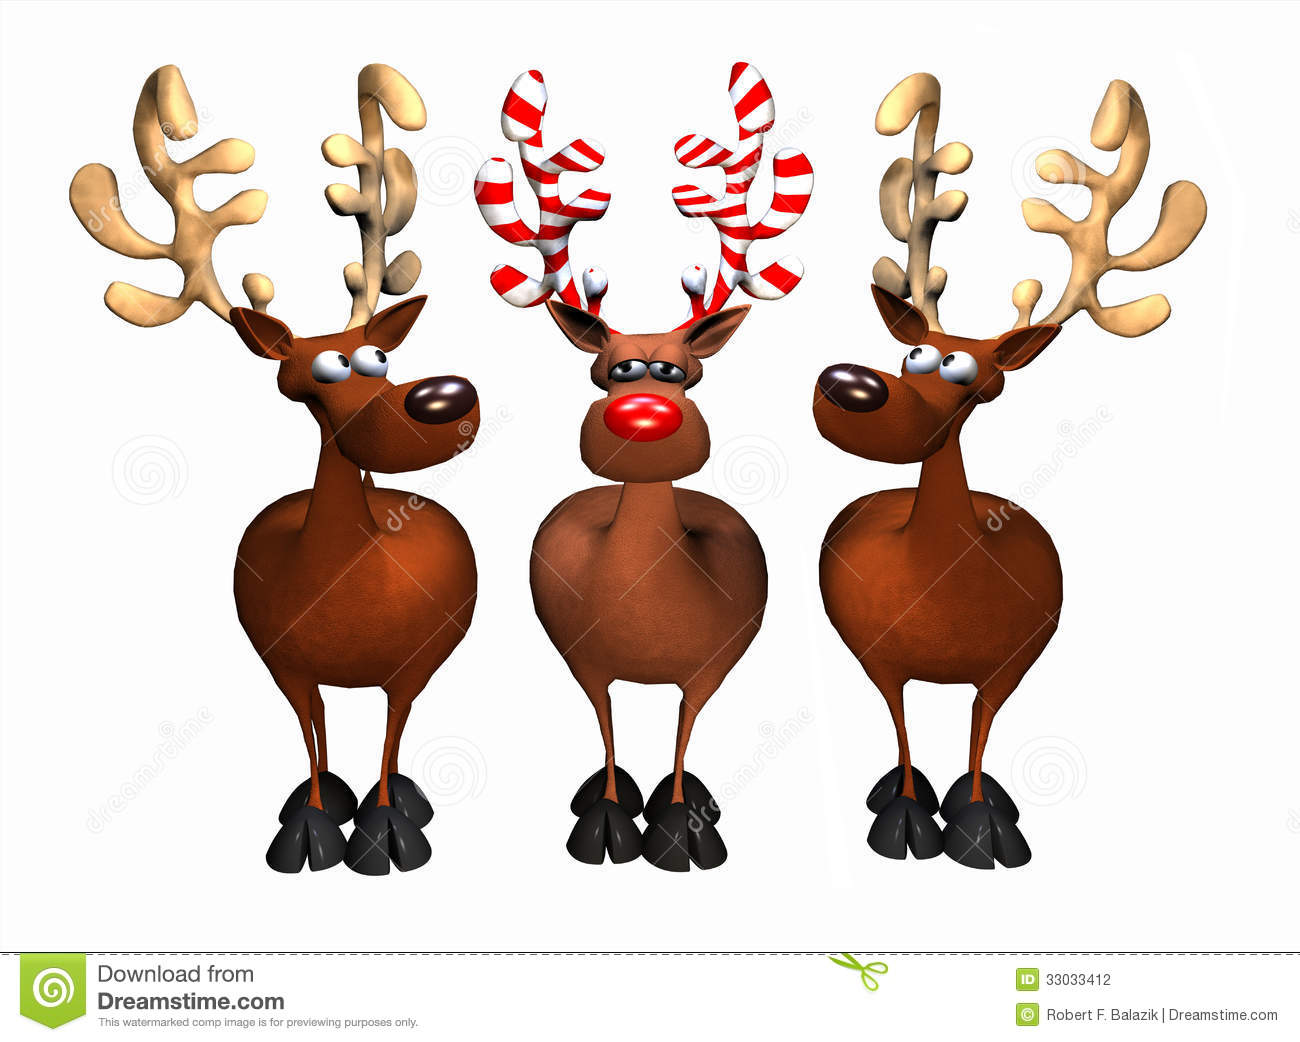 Candy Cane Reindeer stock illustration. Image of humor